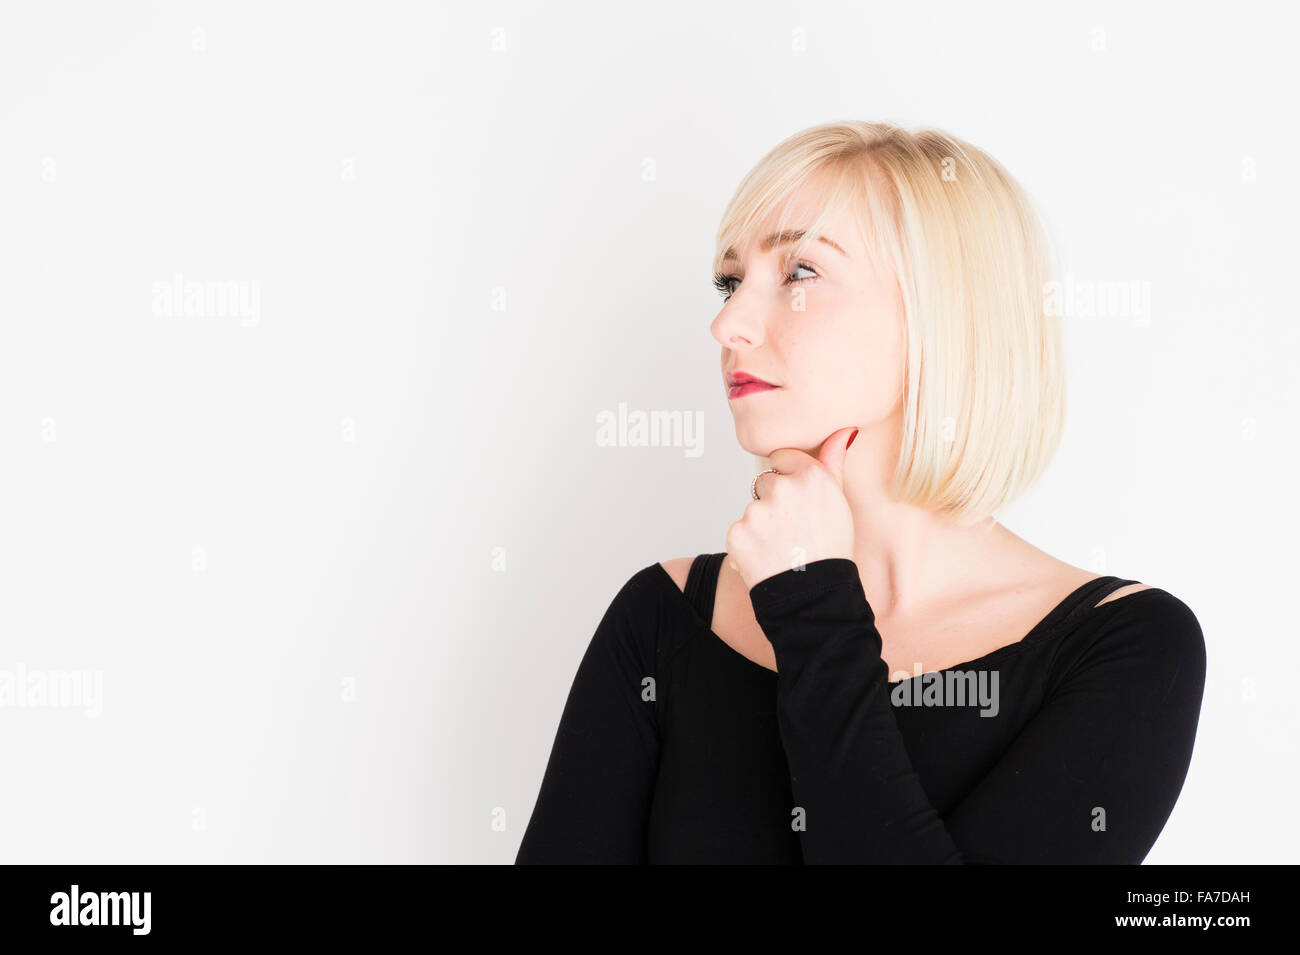 Decision making - difficult life choices and options : A young slim blonde blond haired woman girl, thinking, pondering, - Stock Image